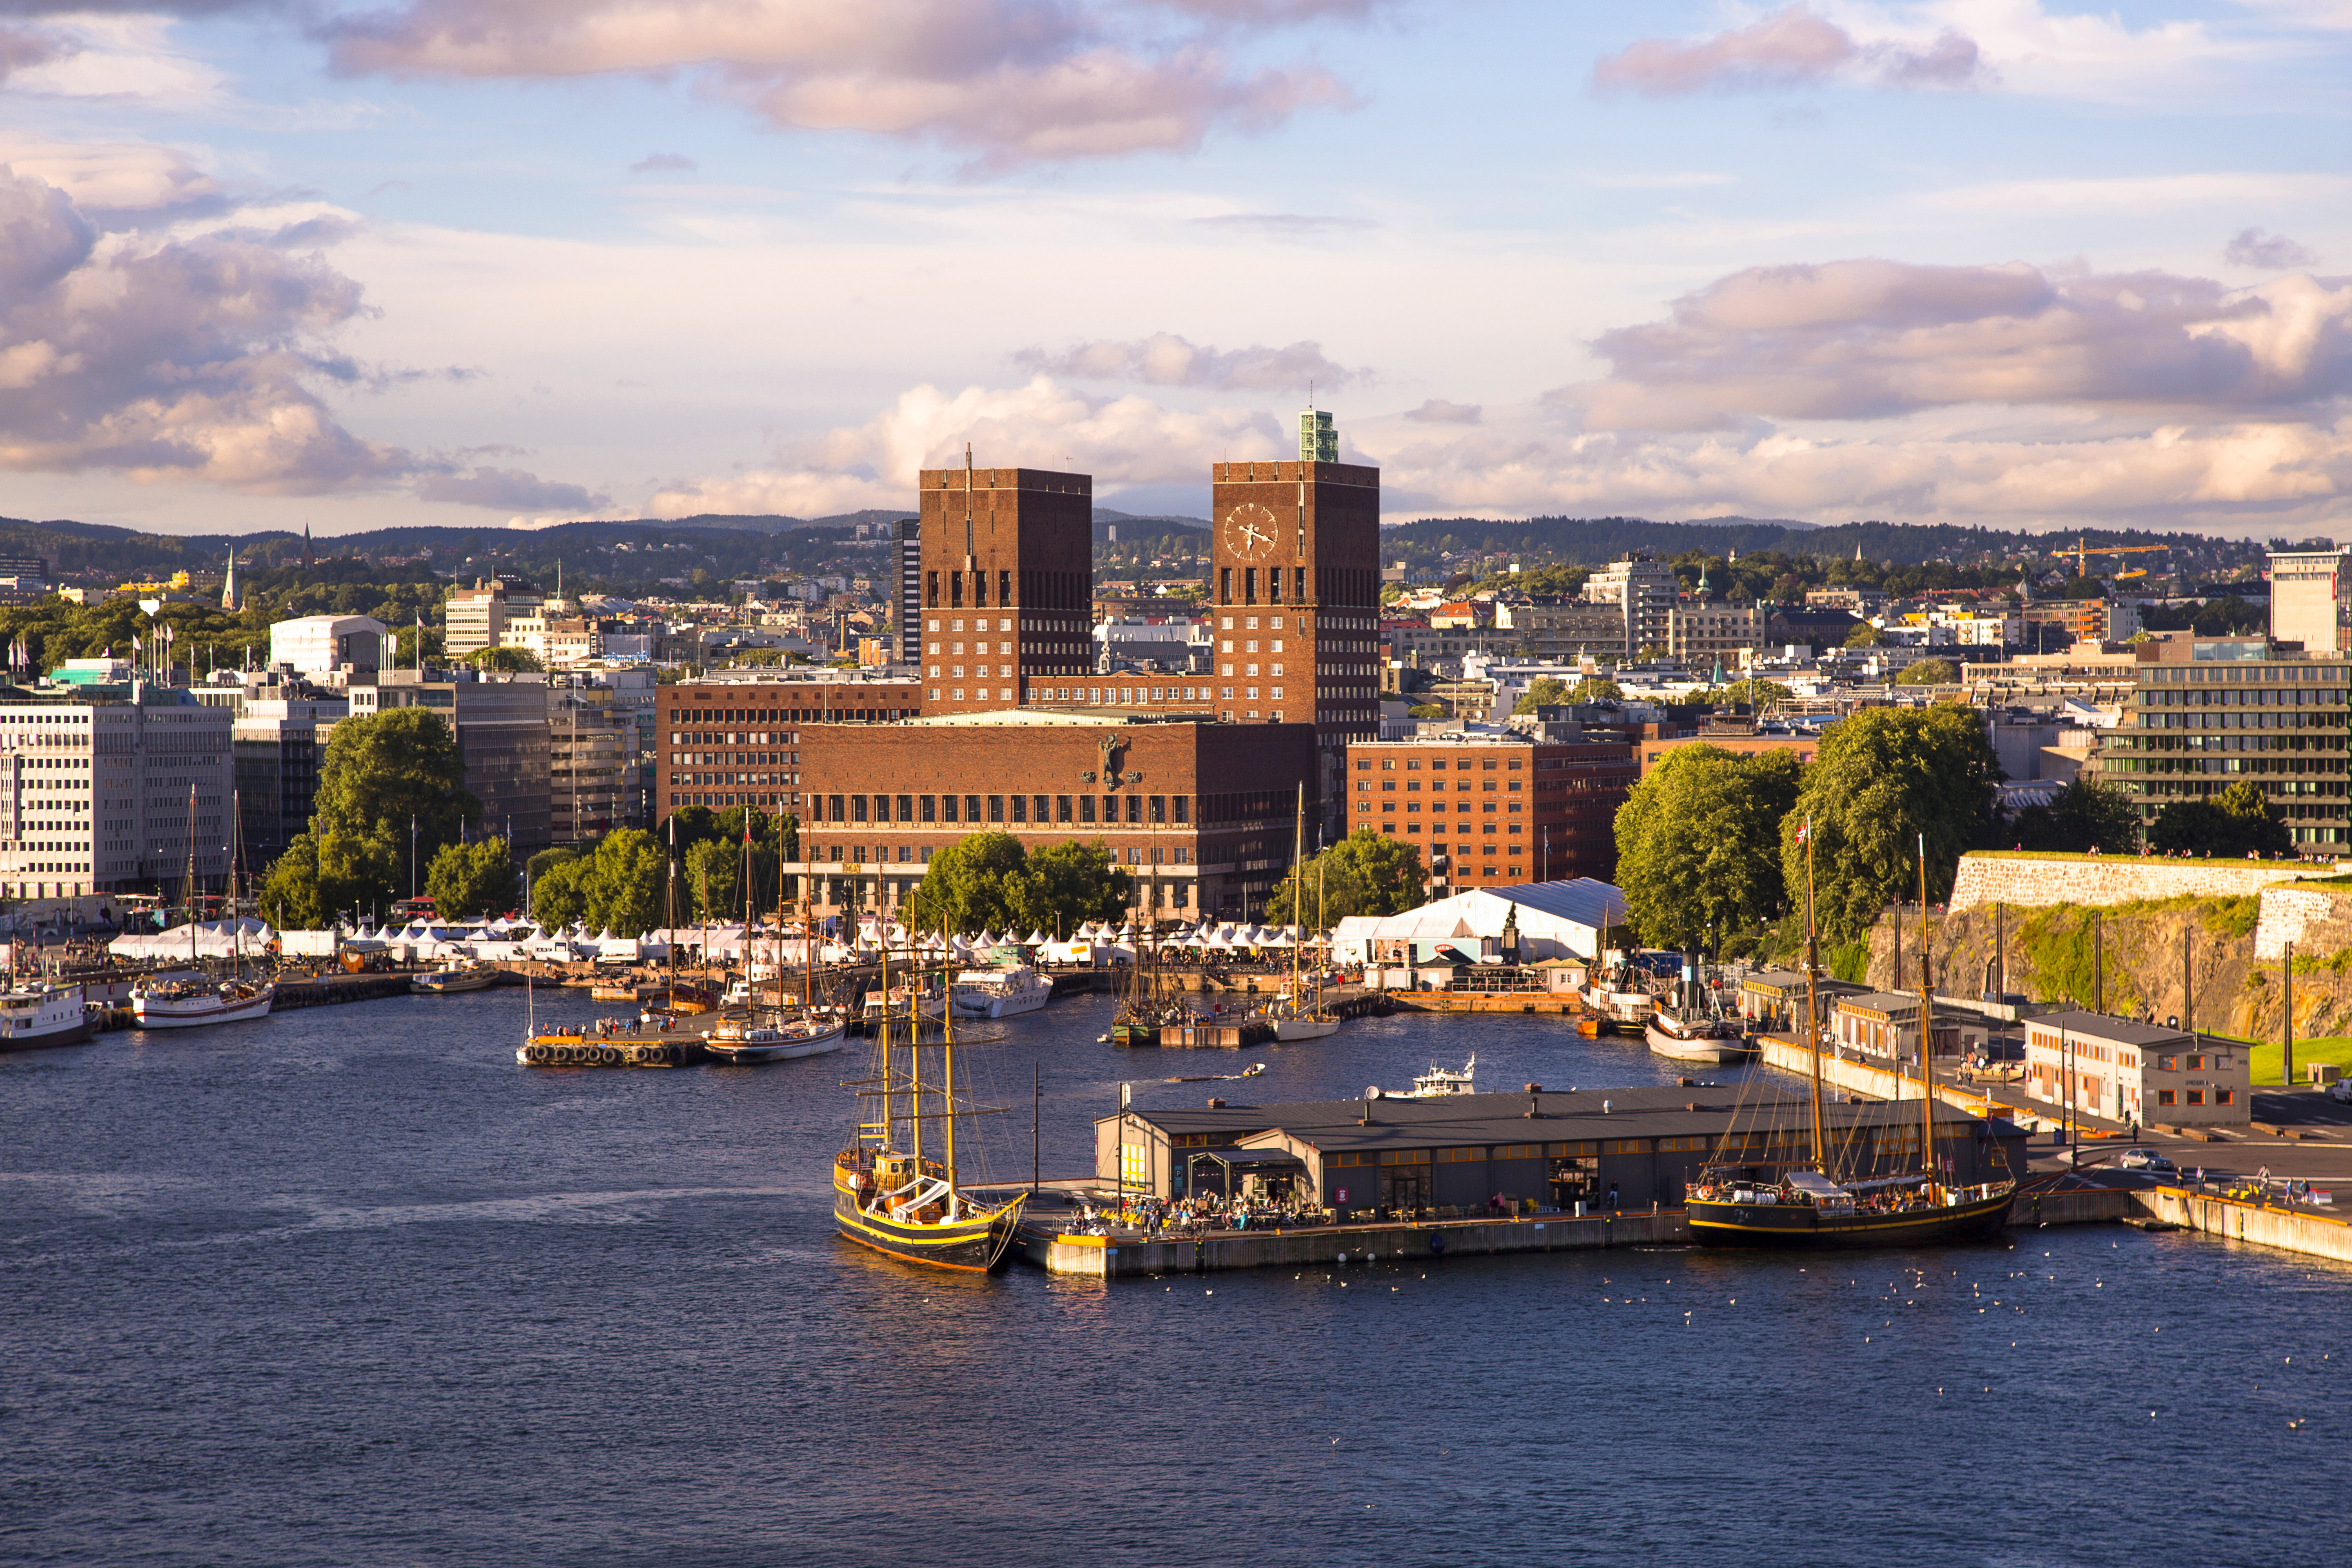 An aerial view of a large brick building with two identical towers on its roof, sitting along a waterfront lined with trees and shorter buildings.